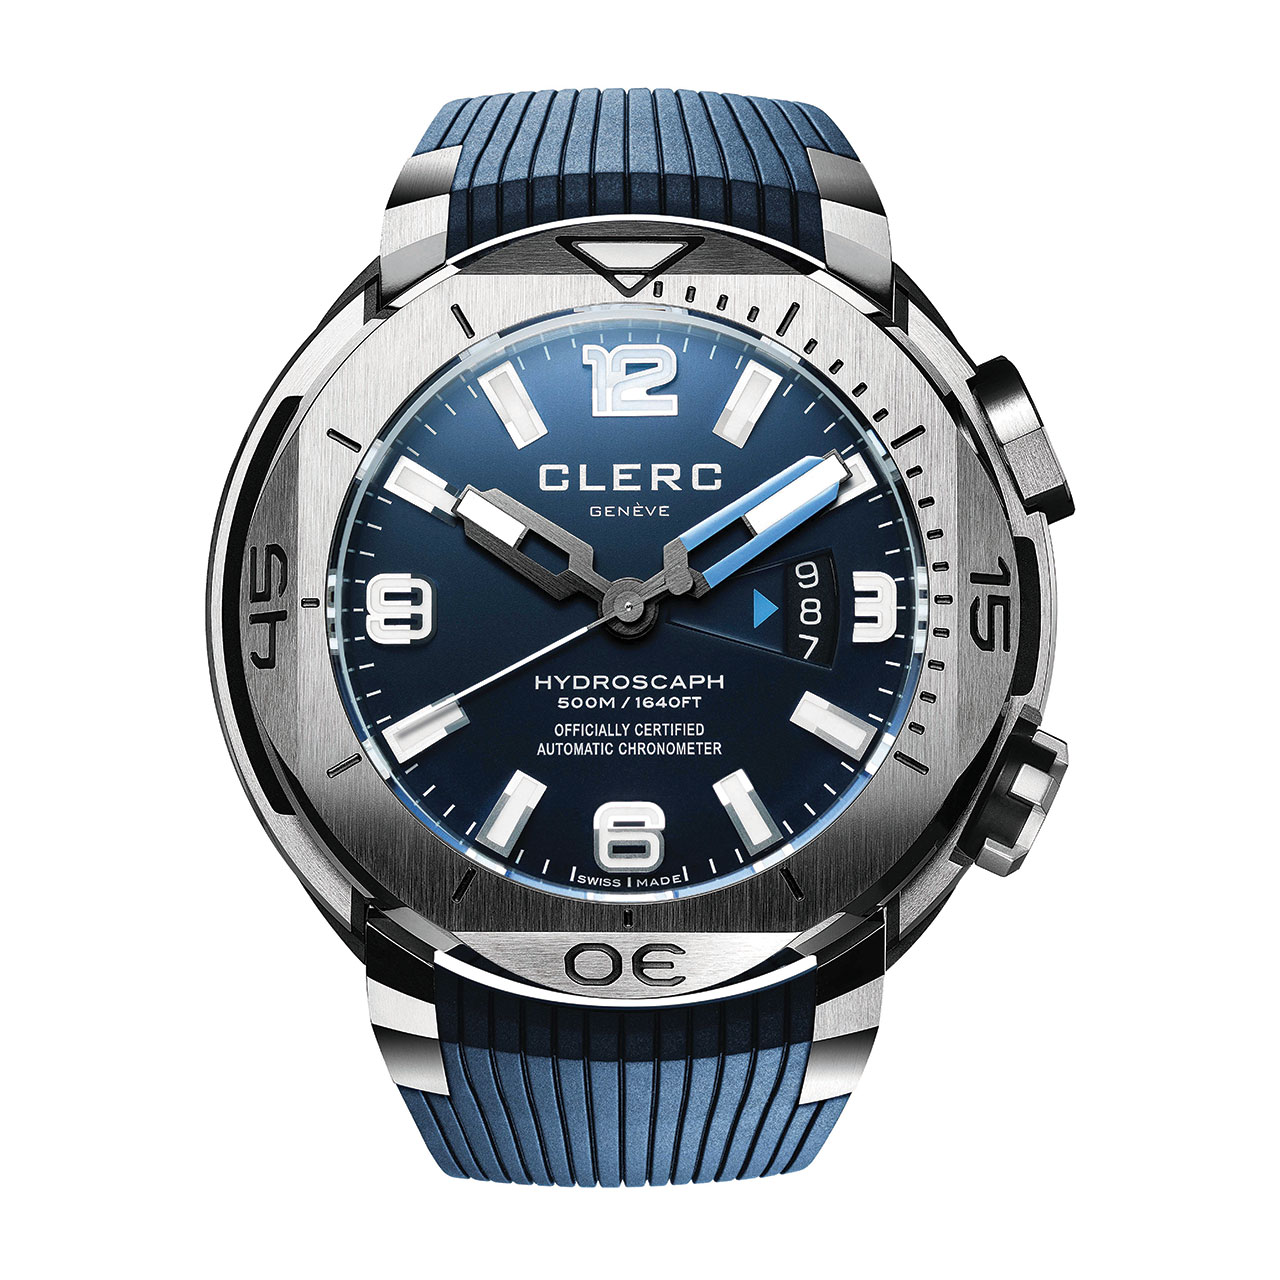 Clerc Hydroscaph H1 Chronometer Mechanical Watch